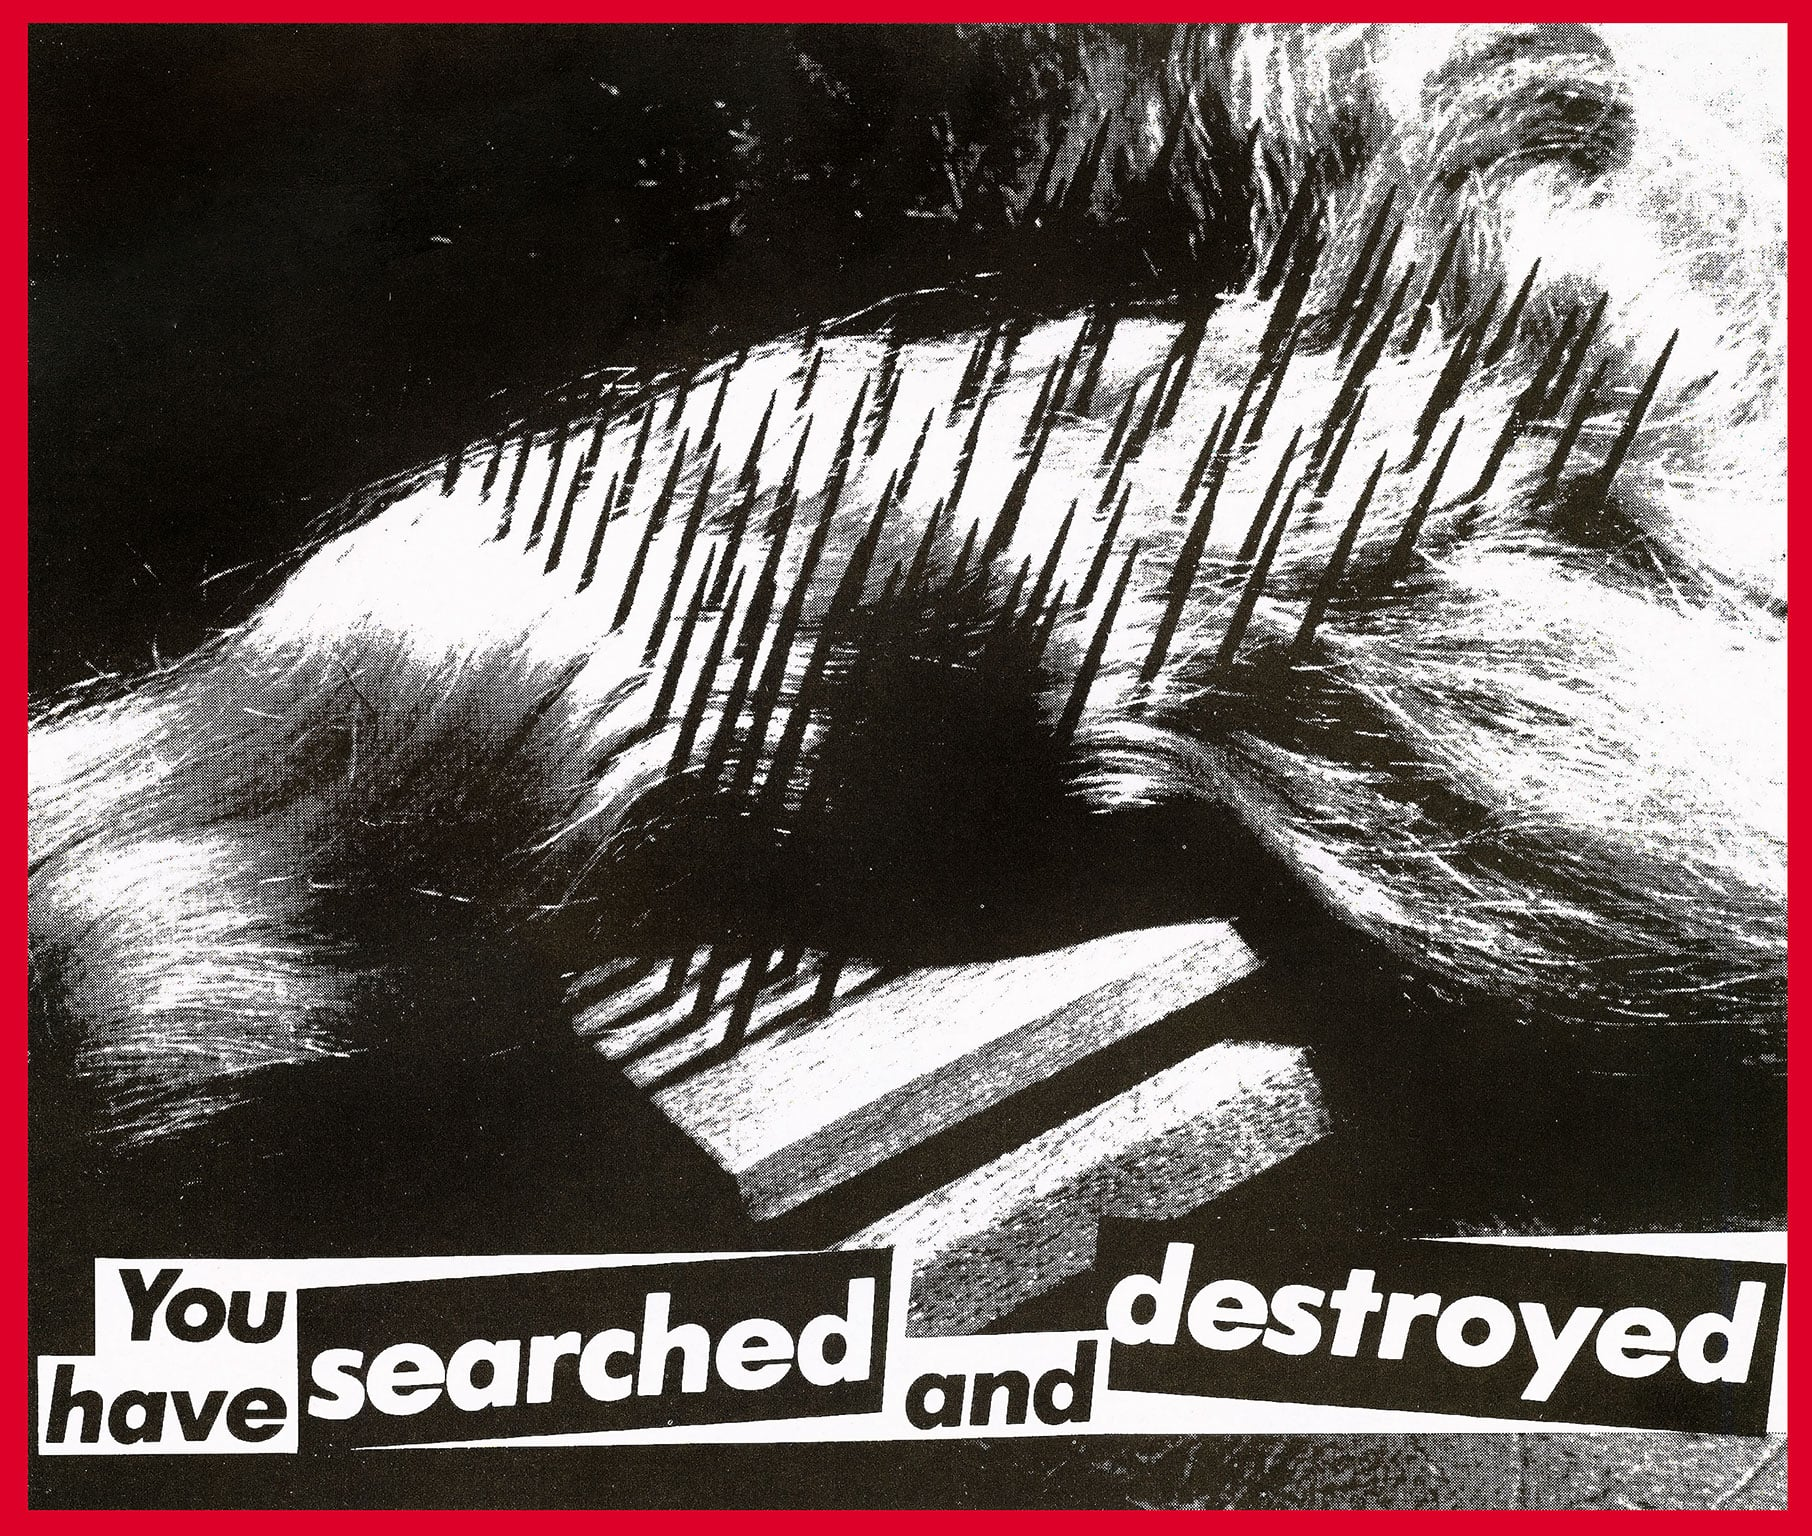 Barbara Kruger, Untitled (You have Searched and Destroyed), 1982 - © courtesy of the artist and Sprüth Magers Berlin London